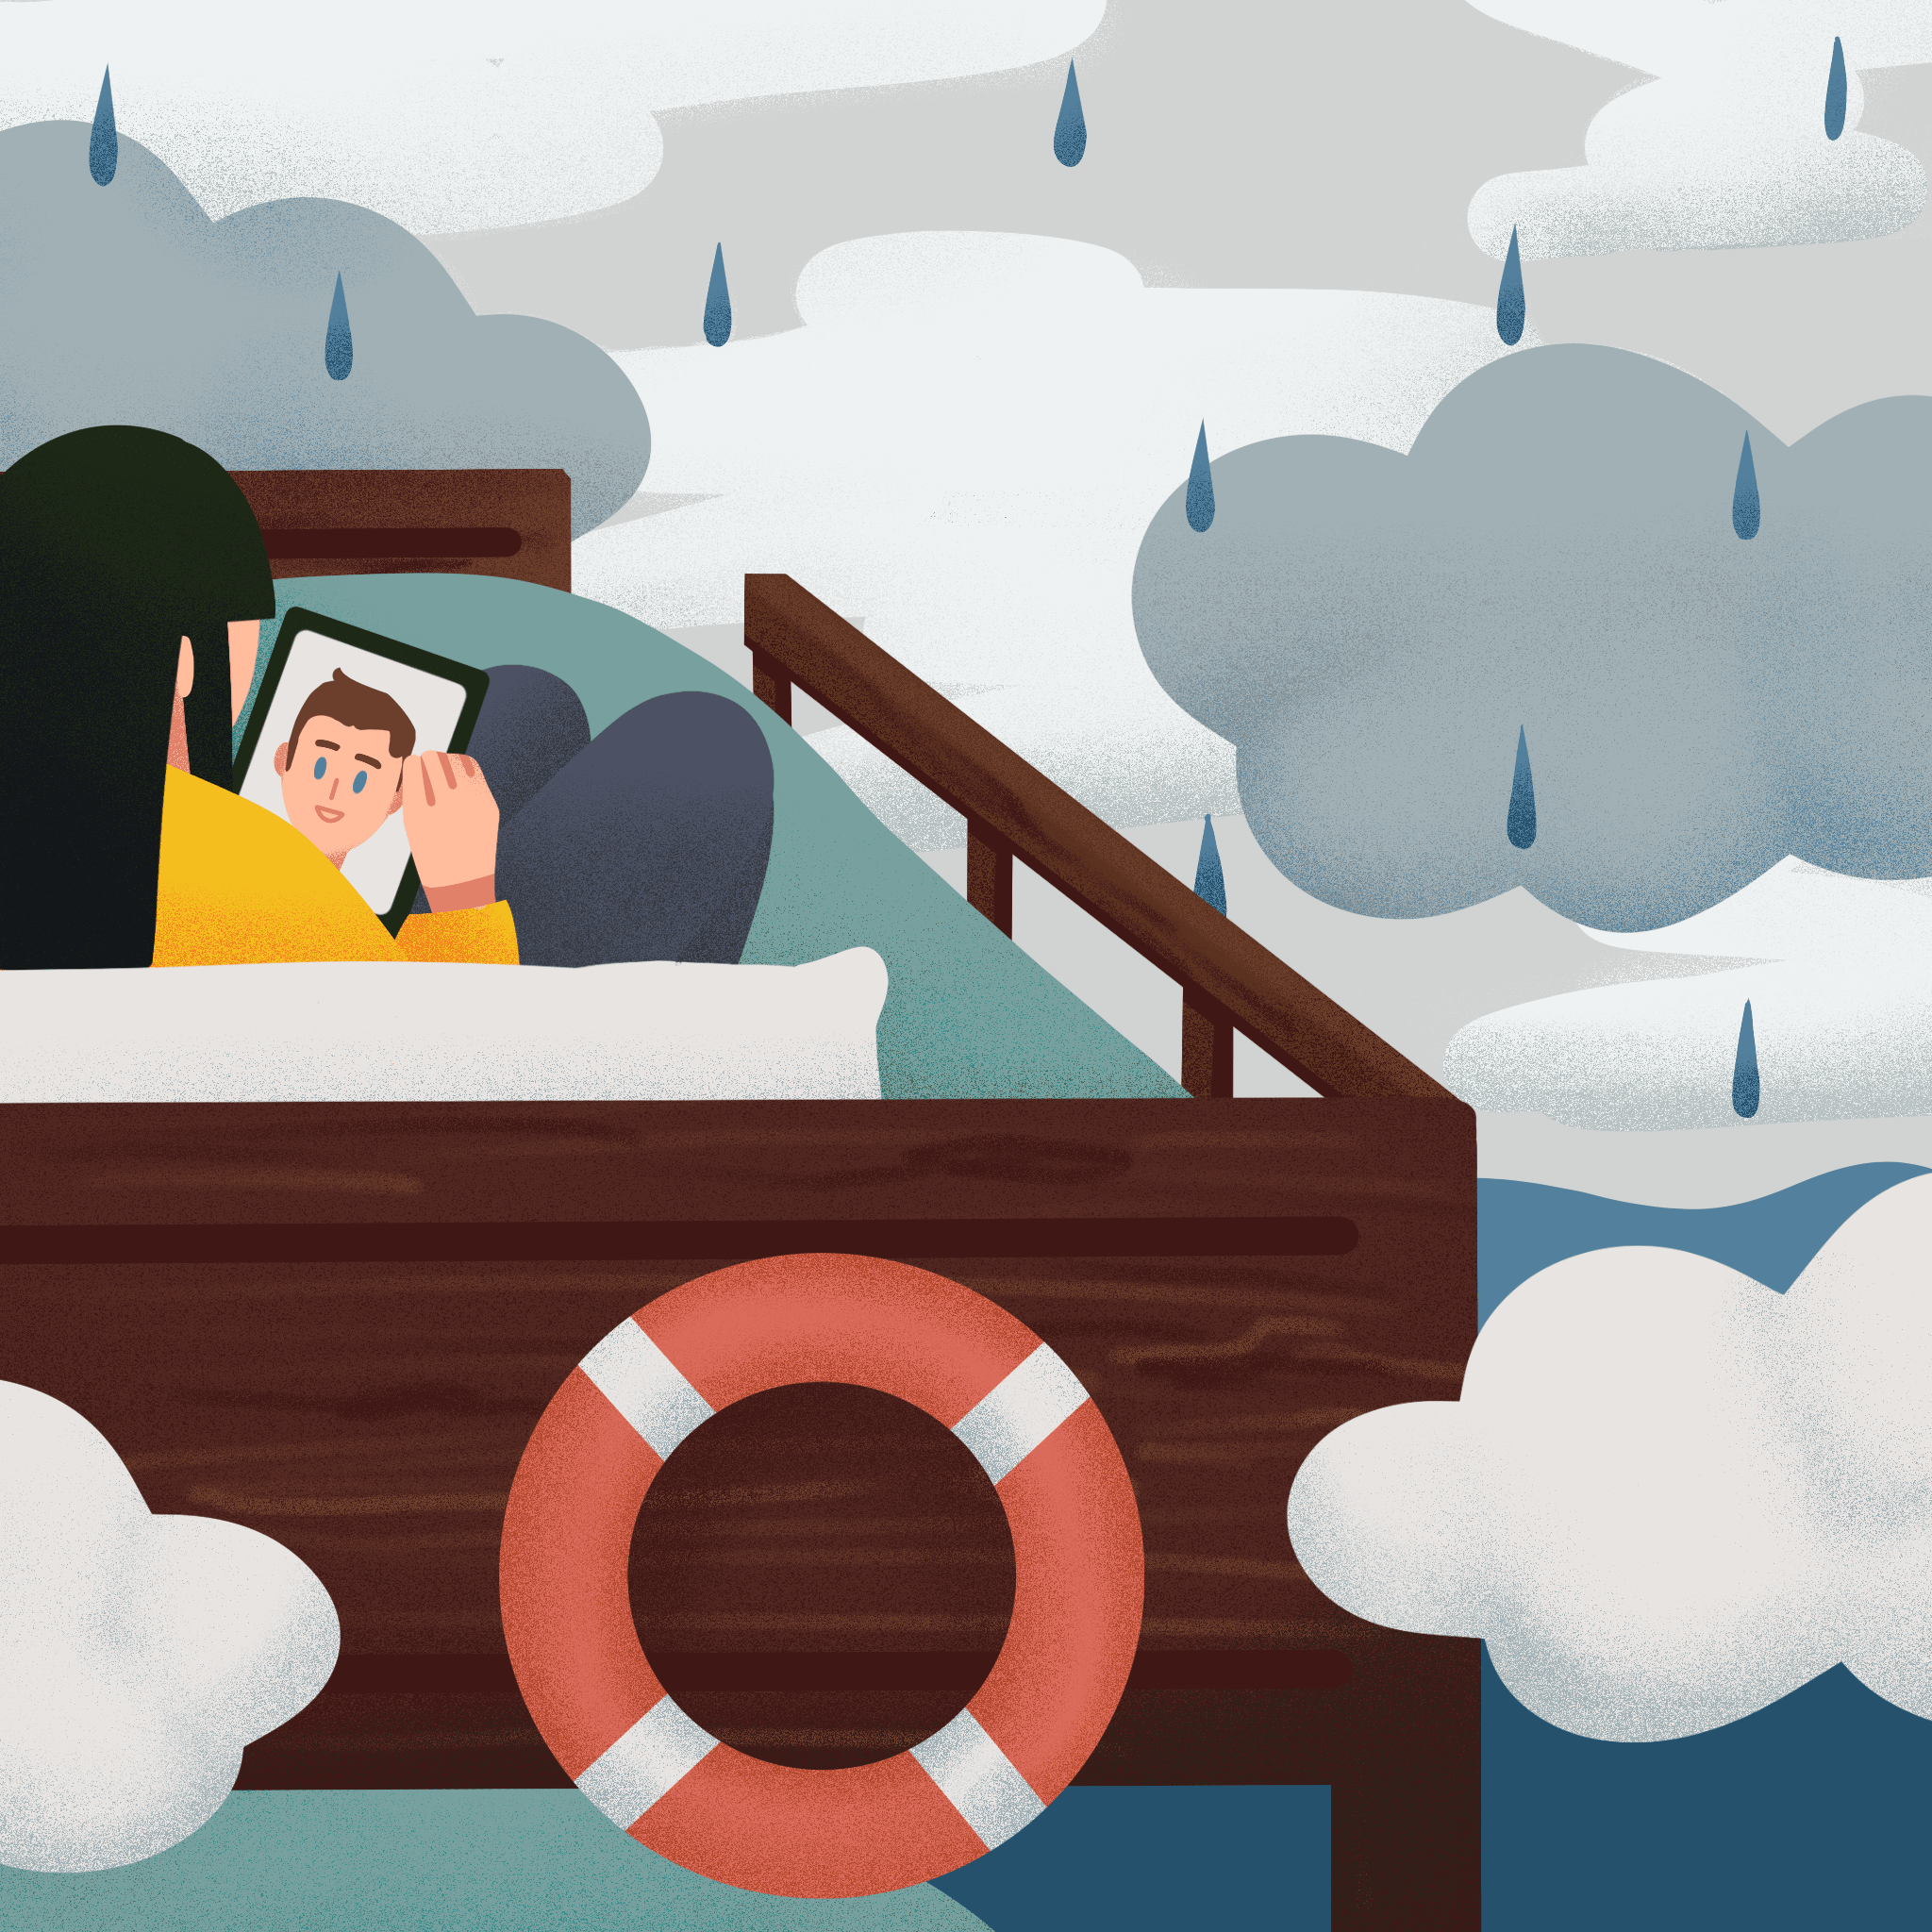 My entry for Anna Goodson illustration agency's Creative Pixel Project, depicting my experience during COVID lockdown.